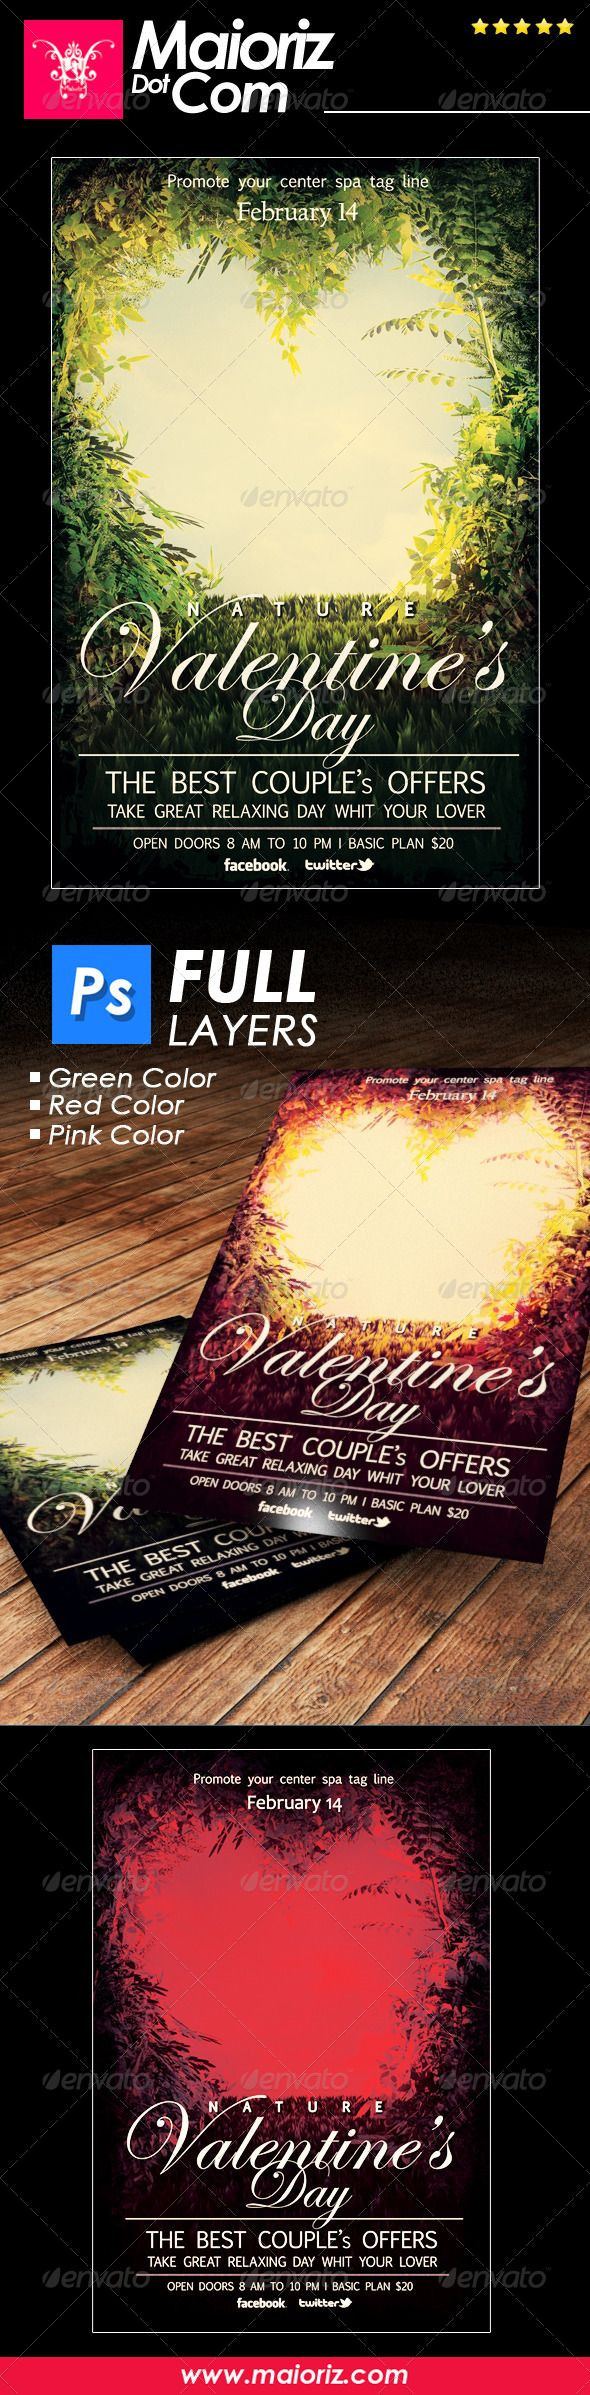 Nature St Valentine Flyer — Photoshop PSD #valentines #valentines day • Available here → https://graphicriver.net/item/nature-st-valentine-flyer/6806493?ref=pxcr